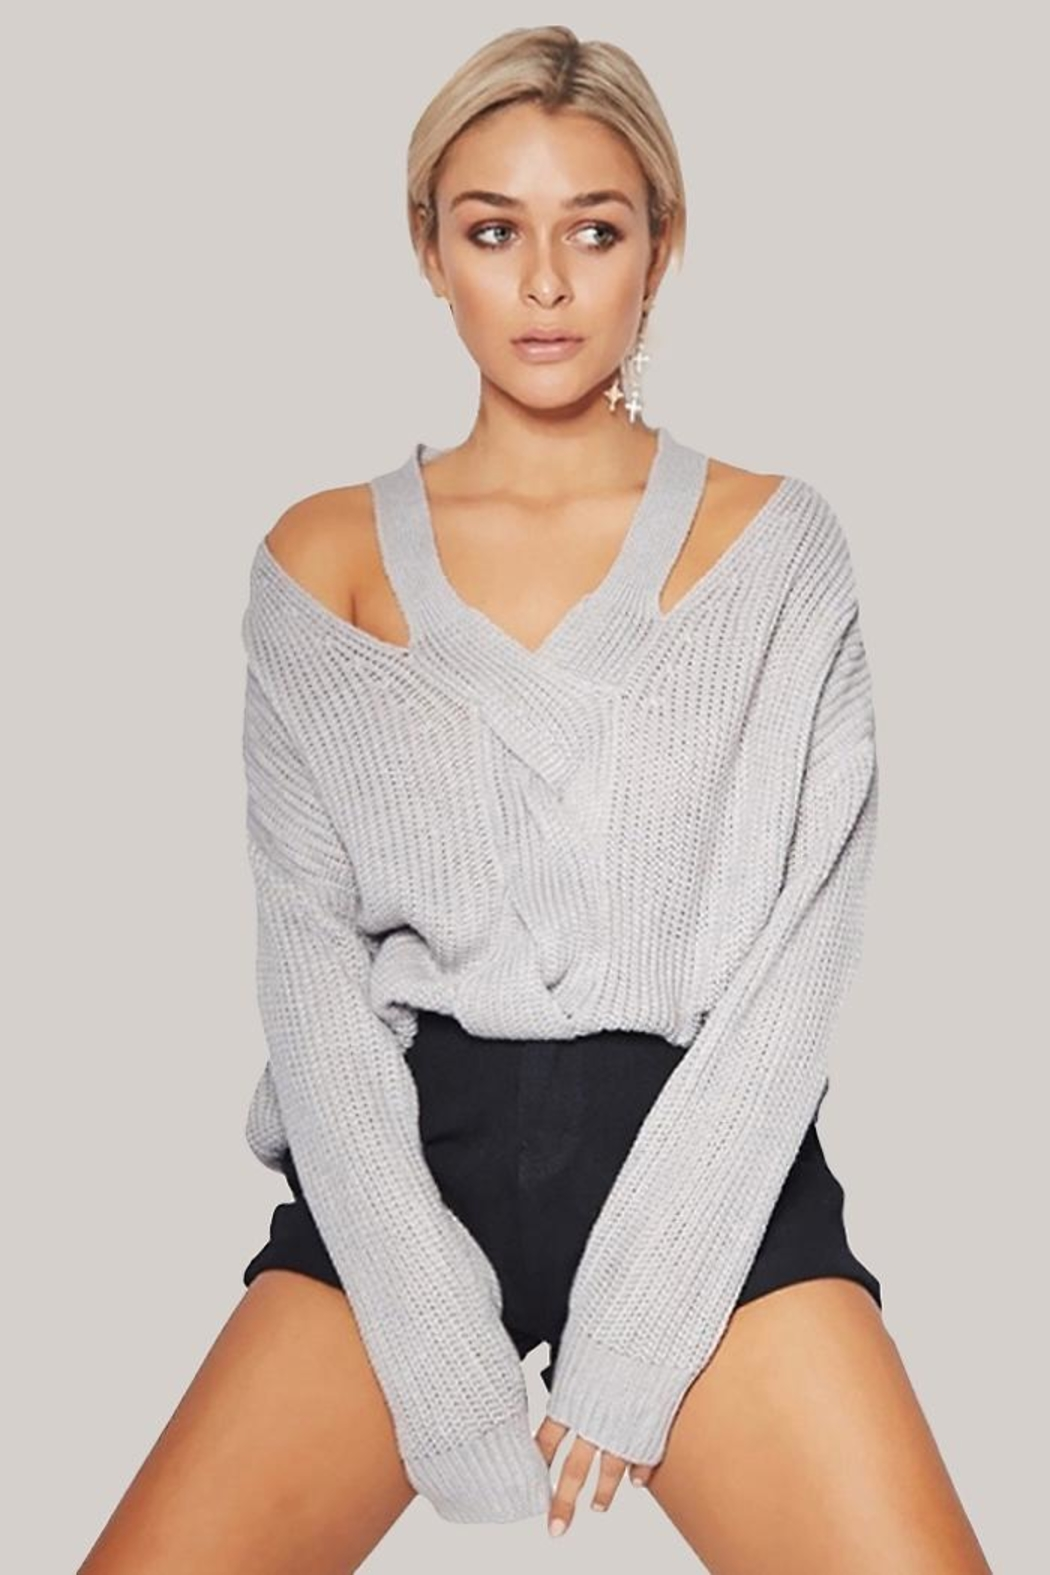 People Outfitter Silver Light Top - Main Image